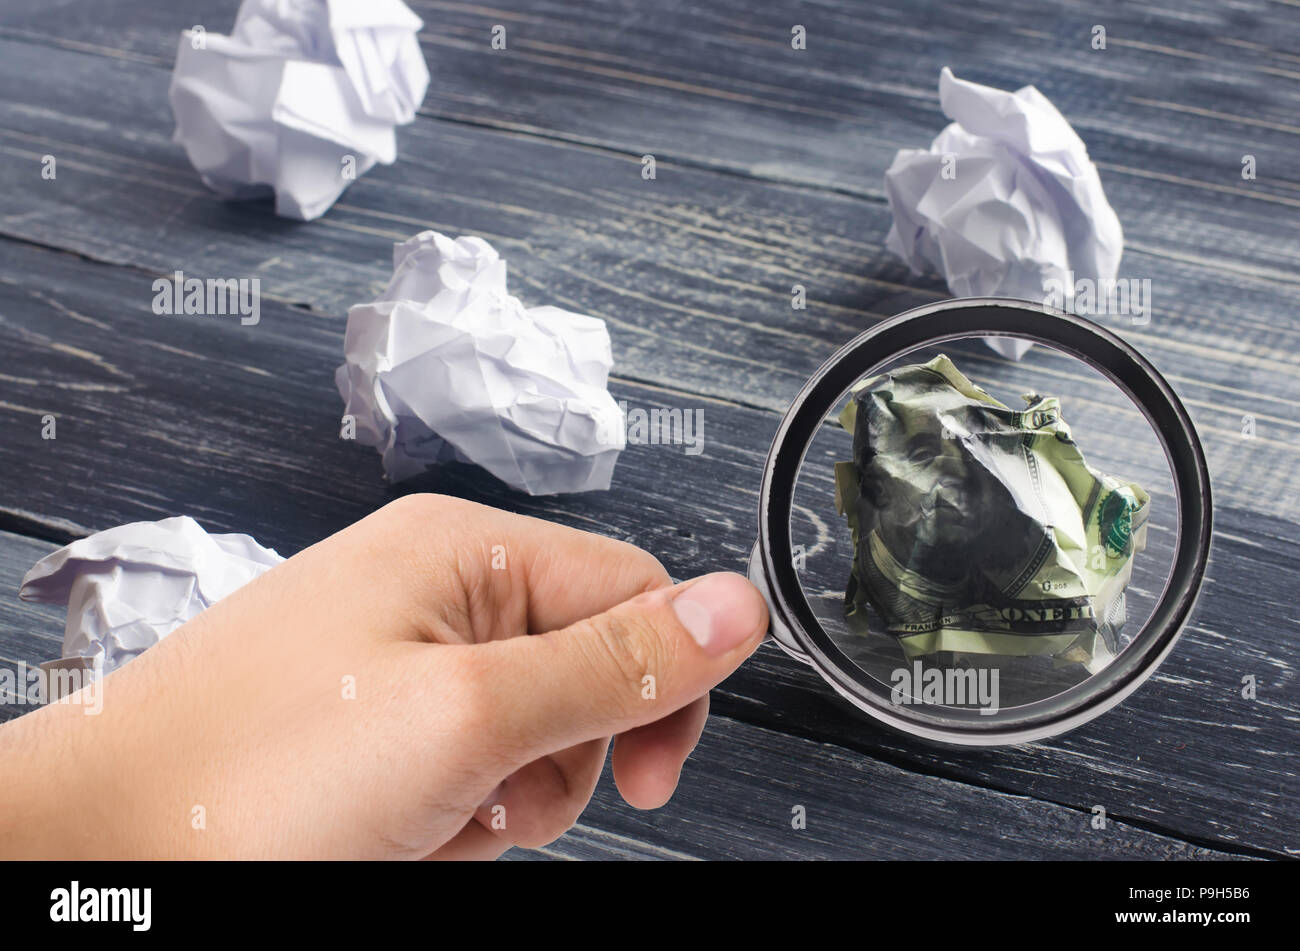 A crumpled dollar on a table next to white paper balls. The process of thinking and finding new business ideas, profitable solutions. Attraction of in - Stock Image